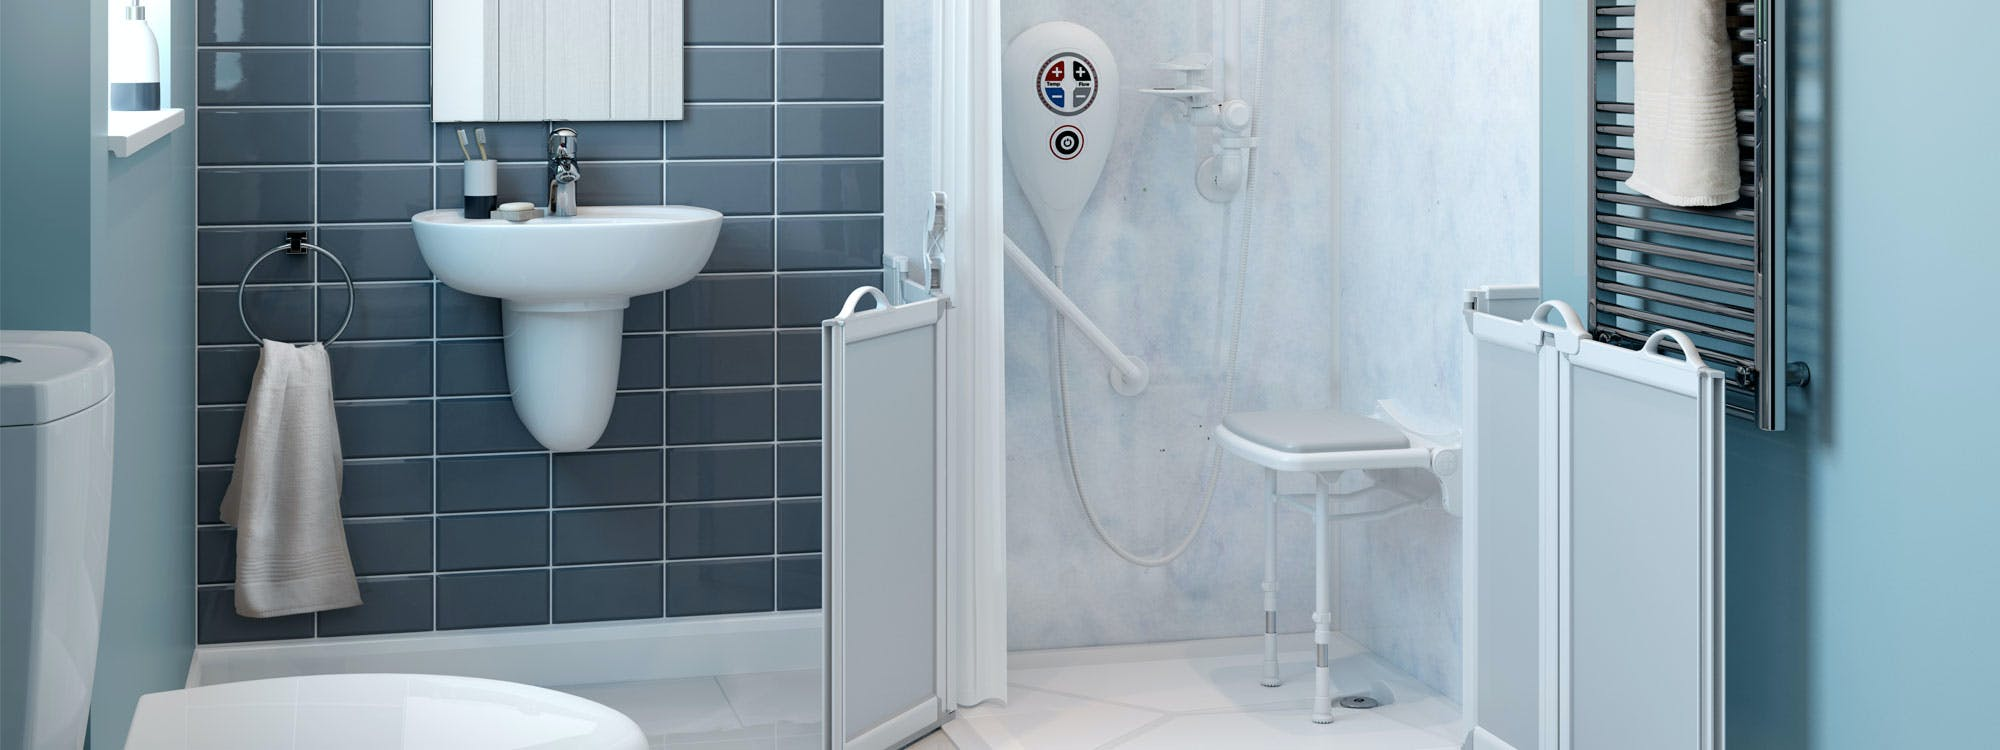 At More Ability we've been specialising in the design & installation of disabled bathrooms for over 50 years. With us, you'll discover a comprehensive range of level access disabled showers and disabled shower solutions that cater for walk-in, wheel-in or zimmer-in access.